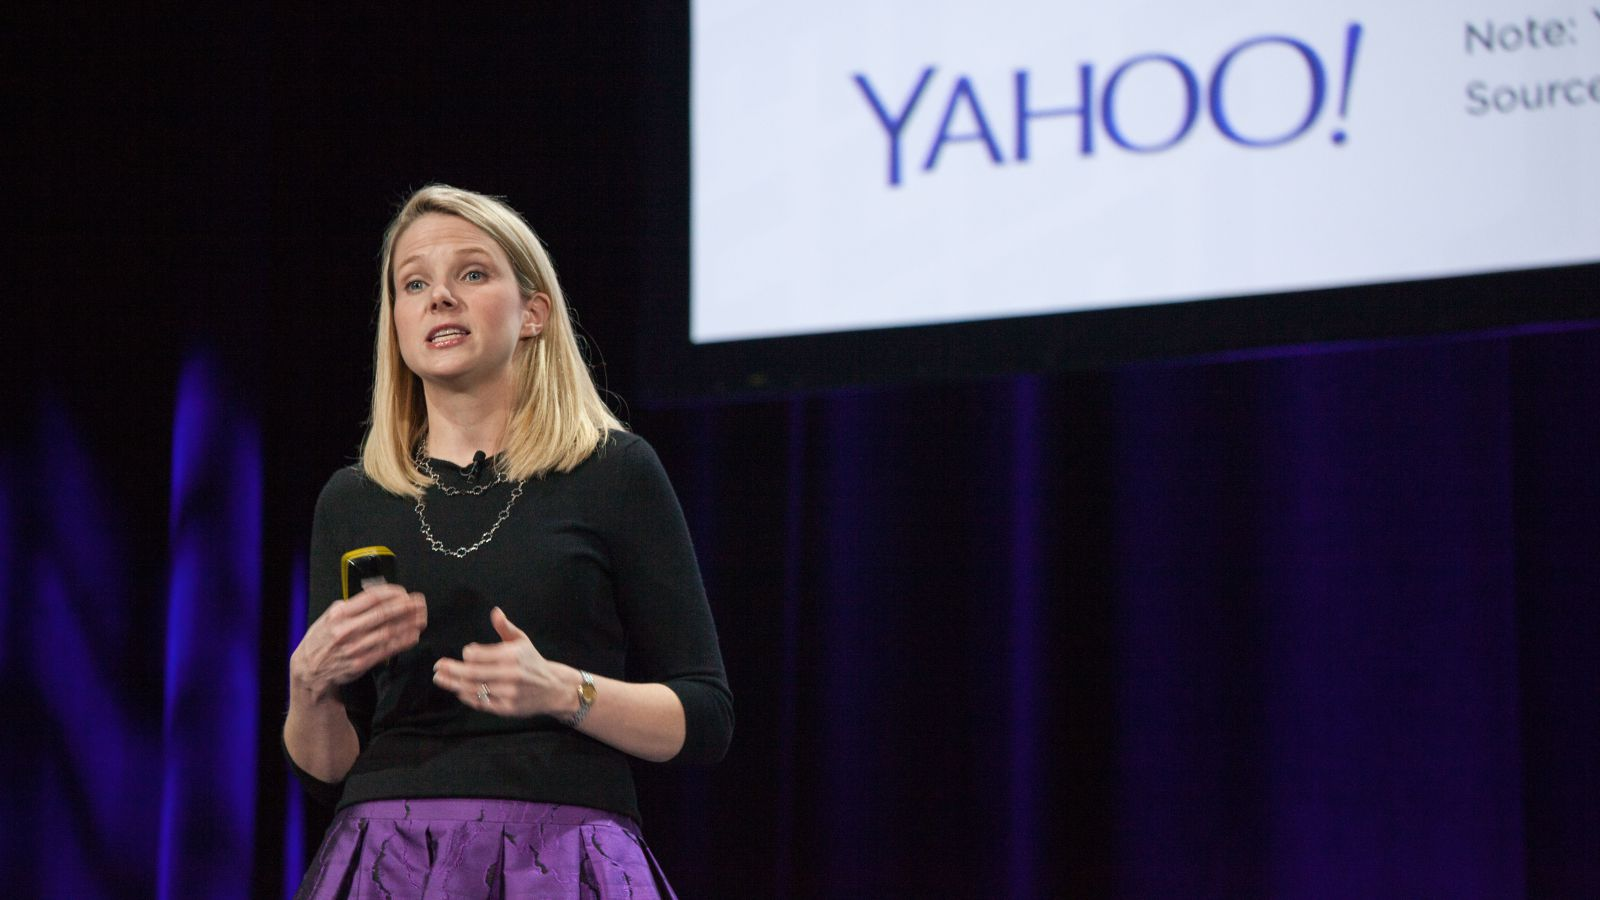 Yahoo Renamed Altaba and Marissa Mayer to be removed from the Board